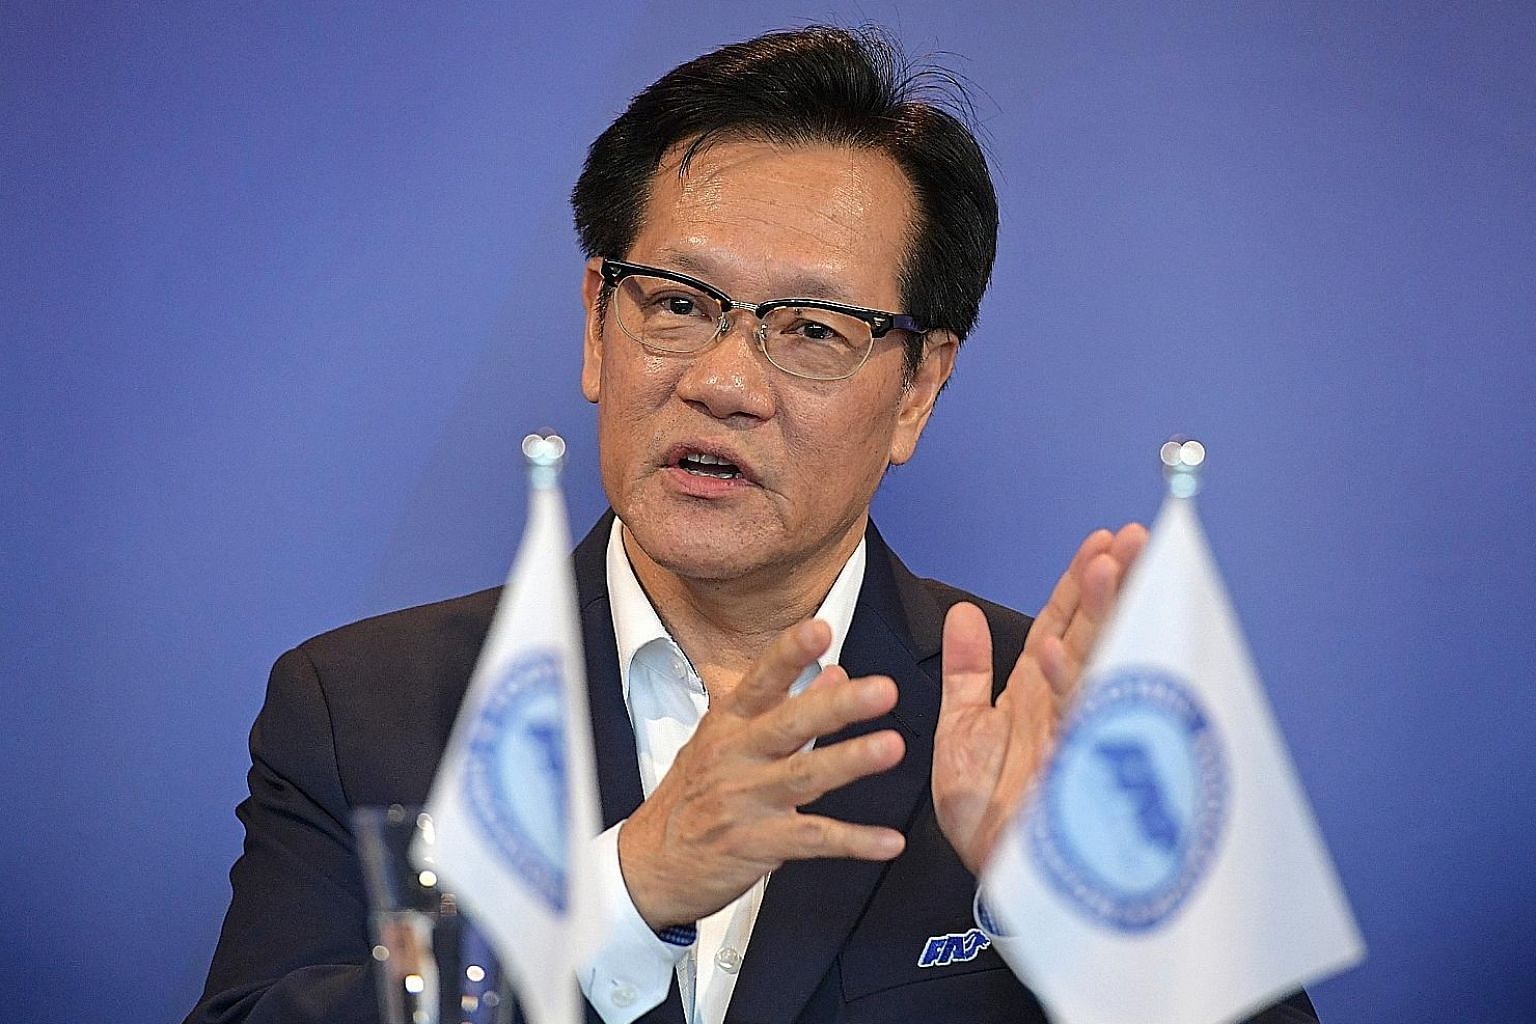 FAS president Lim Kia Tong says at the announcement that players must put in greater effort and the mindset of management also needs to change for higher-quality football.